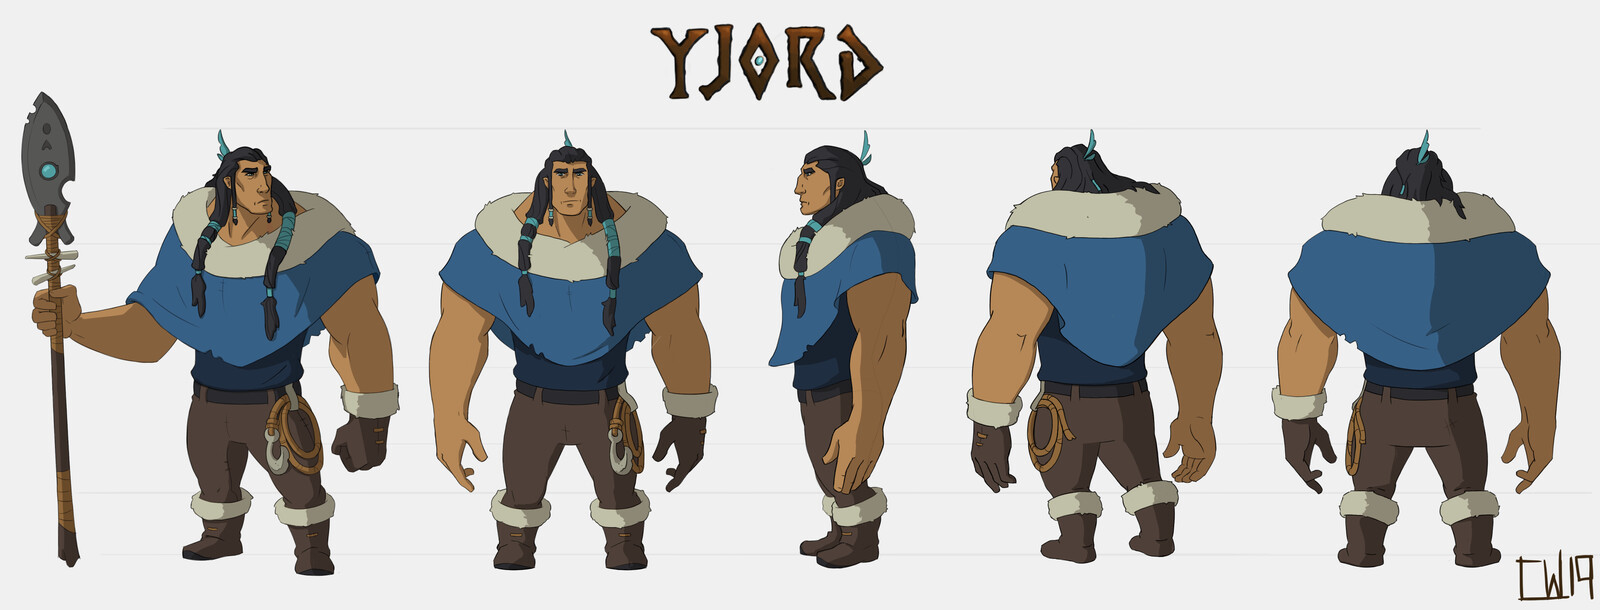 Yjord Character Turn Around